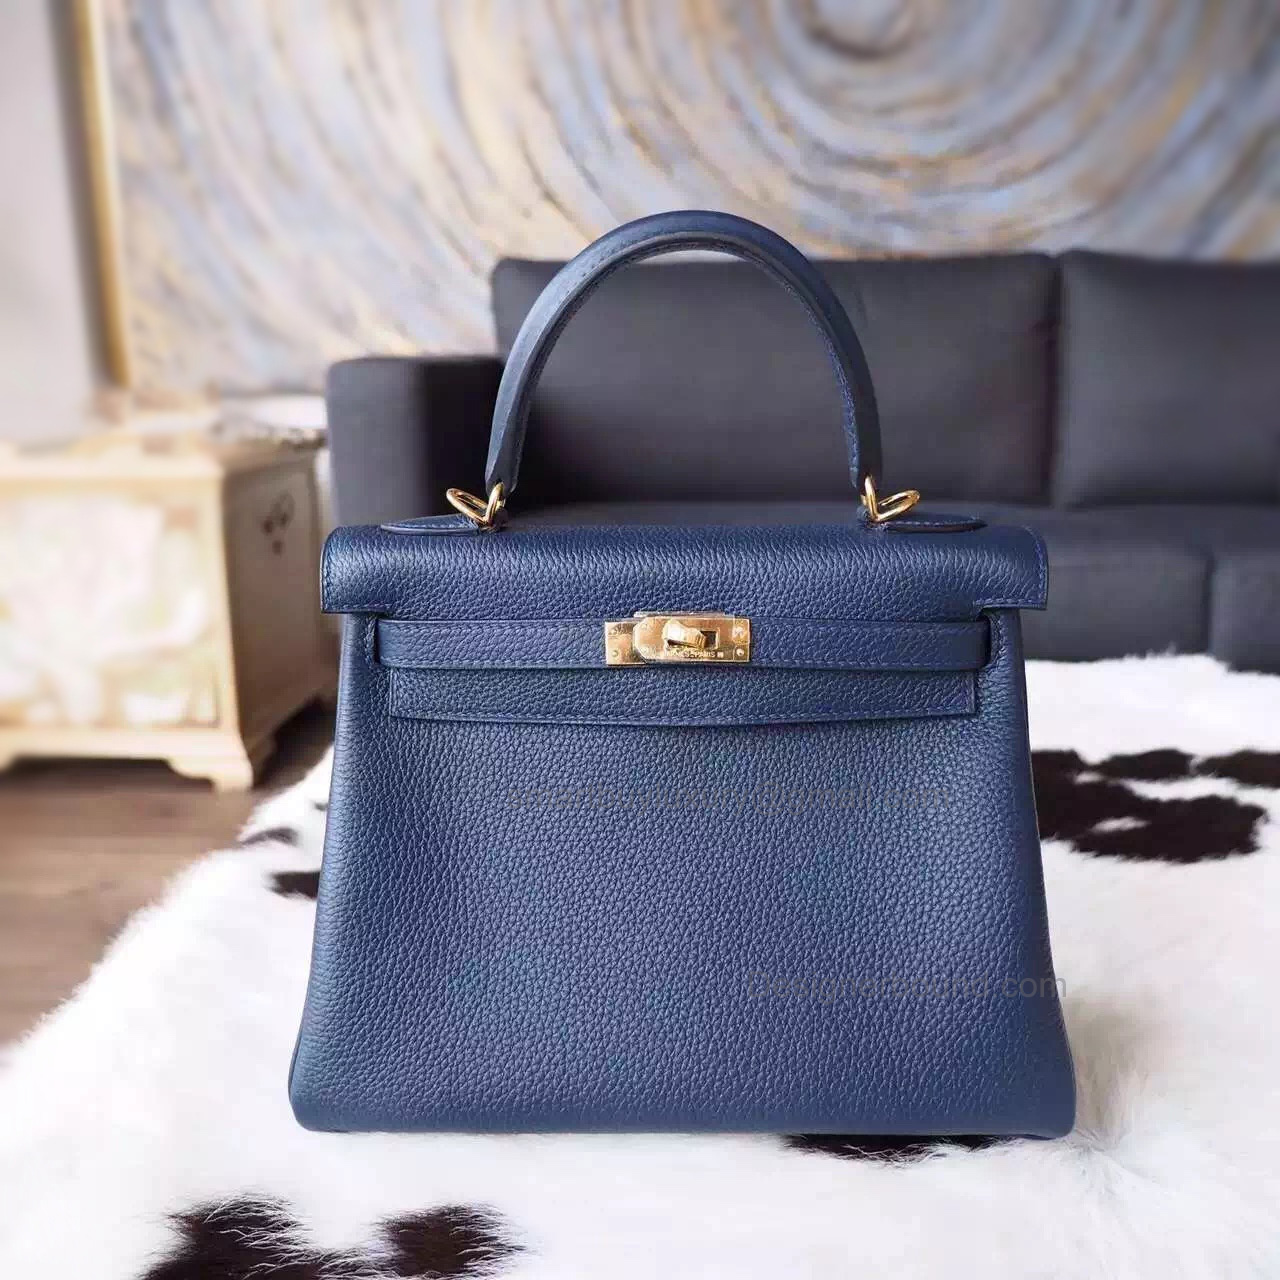 Copy Hermes Kelly 25 Handmade Bag in 2z Blue Niut Togo Calfskin GHW